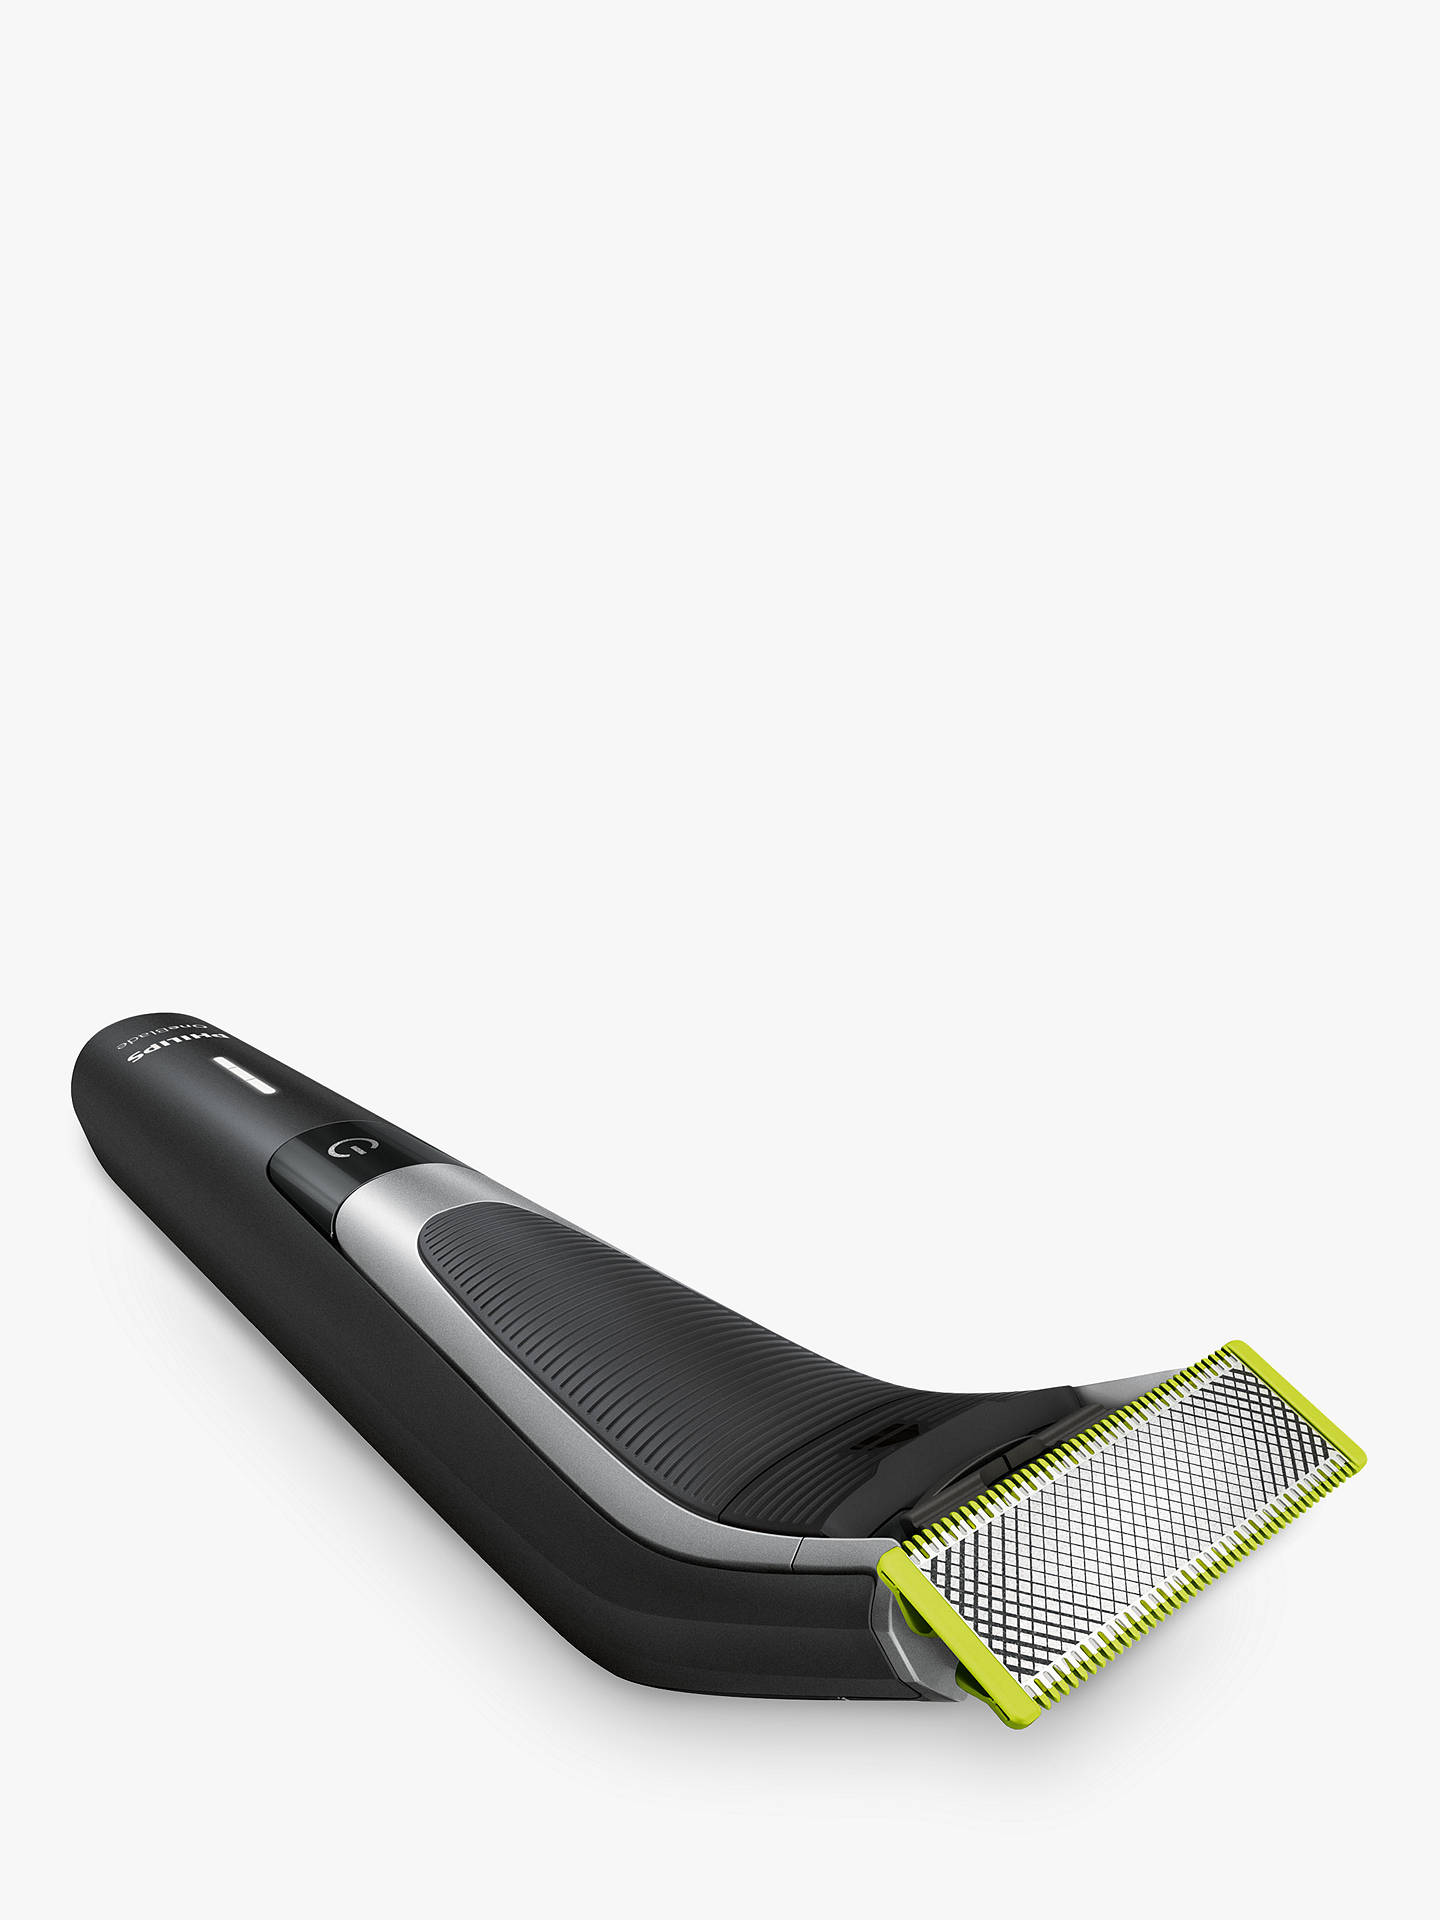 BuyPhilips QP6510/25 OneBlade Pro Styler and Shaver, Black Online at johnlewis.com